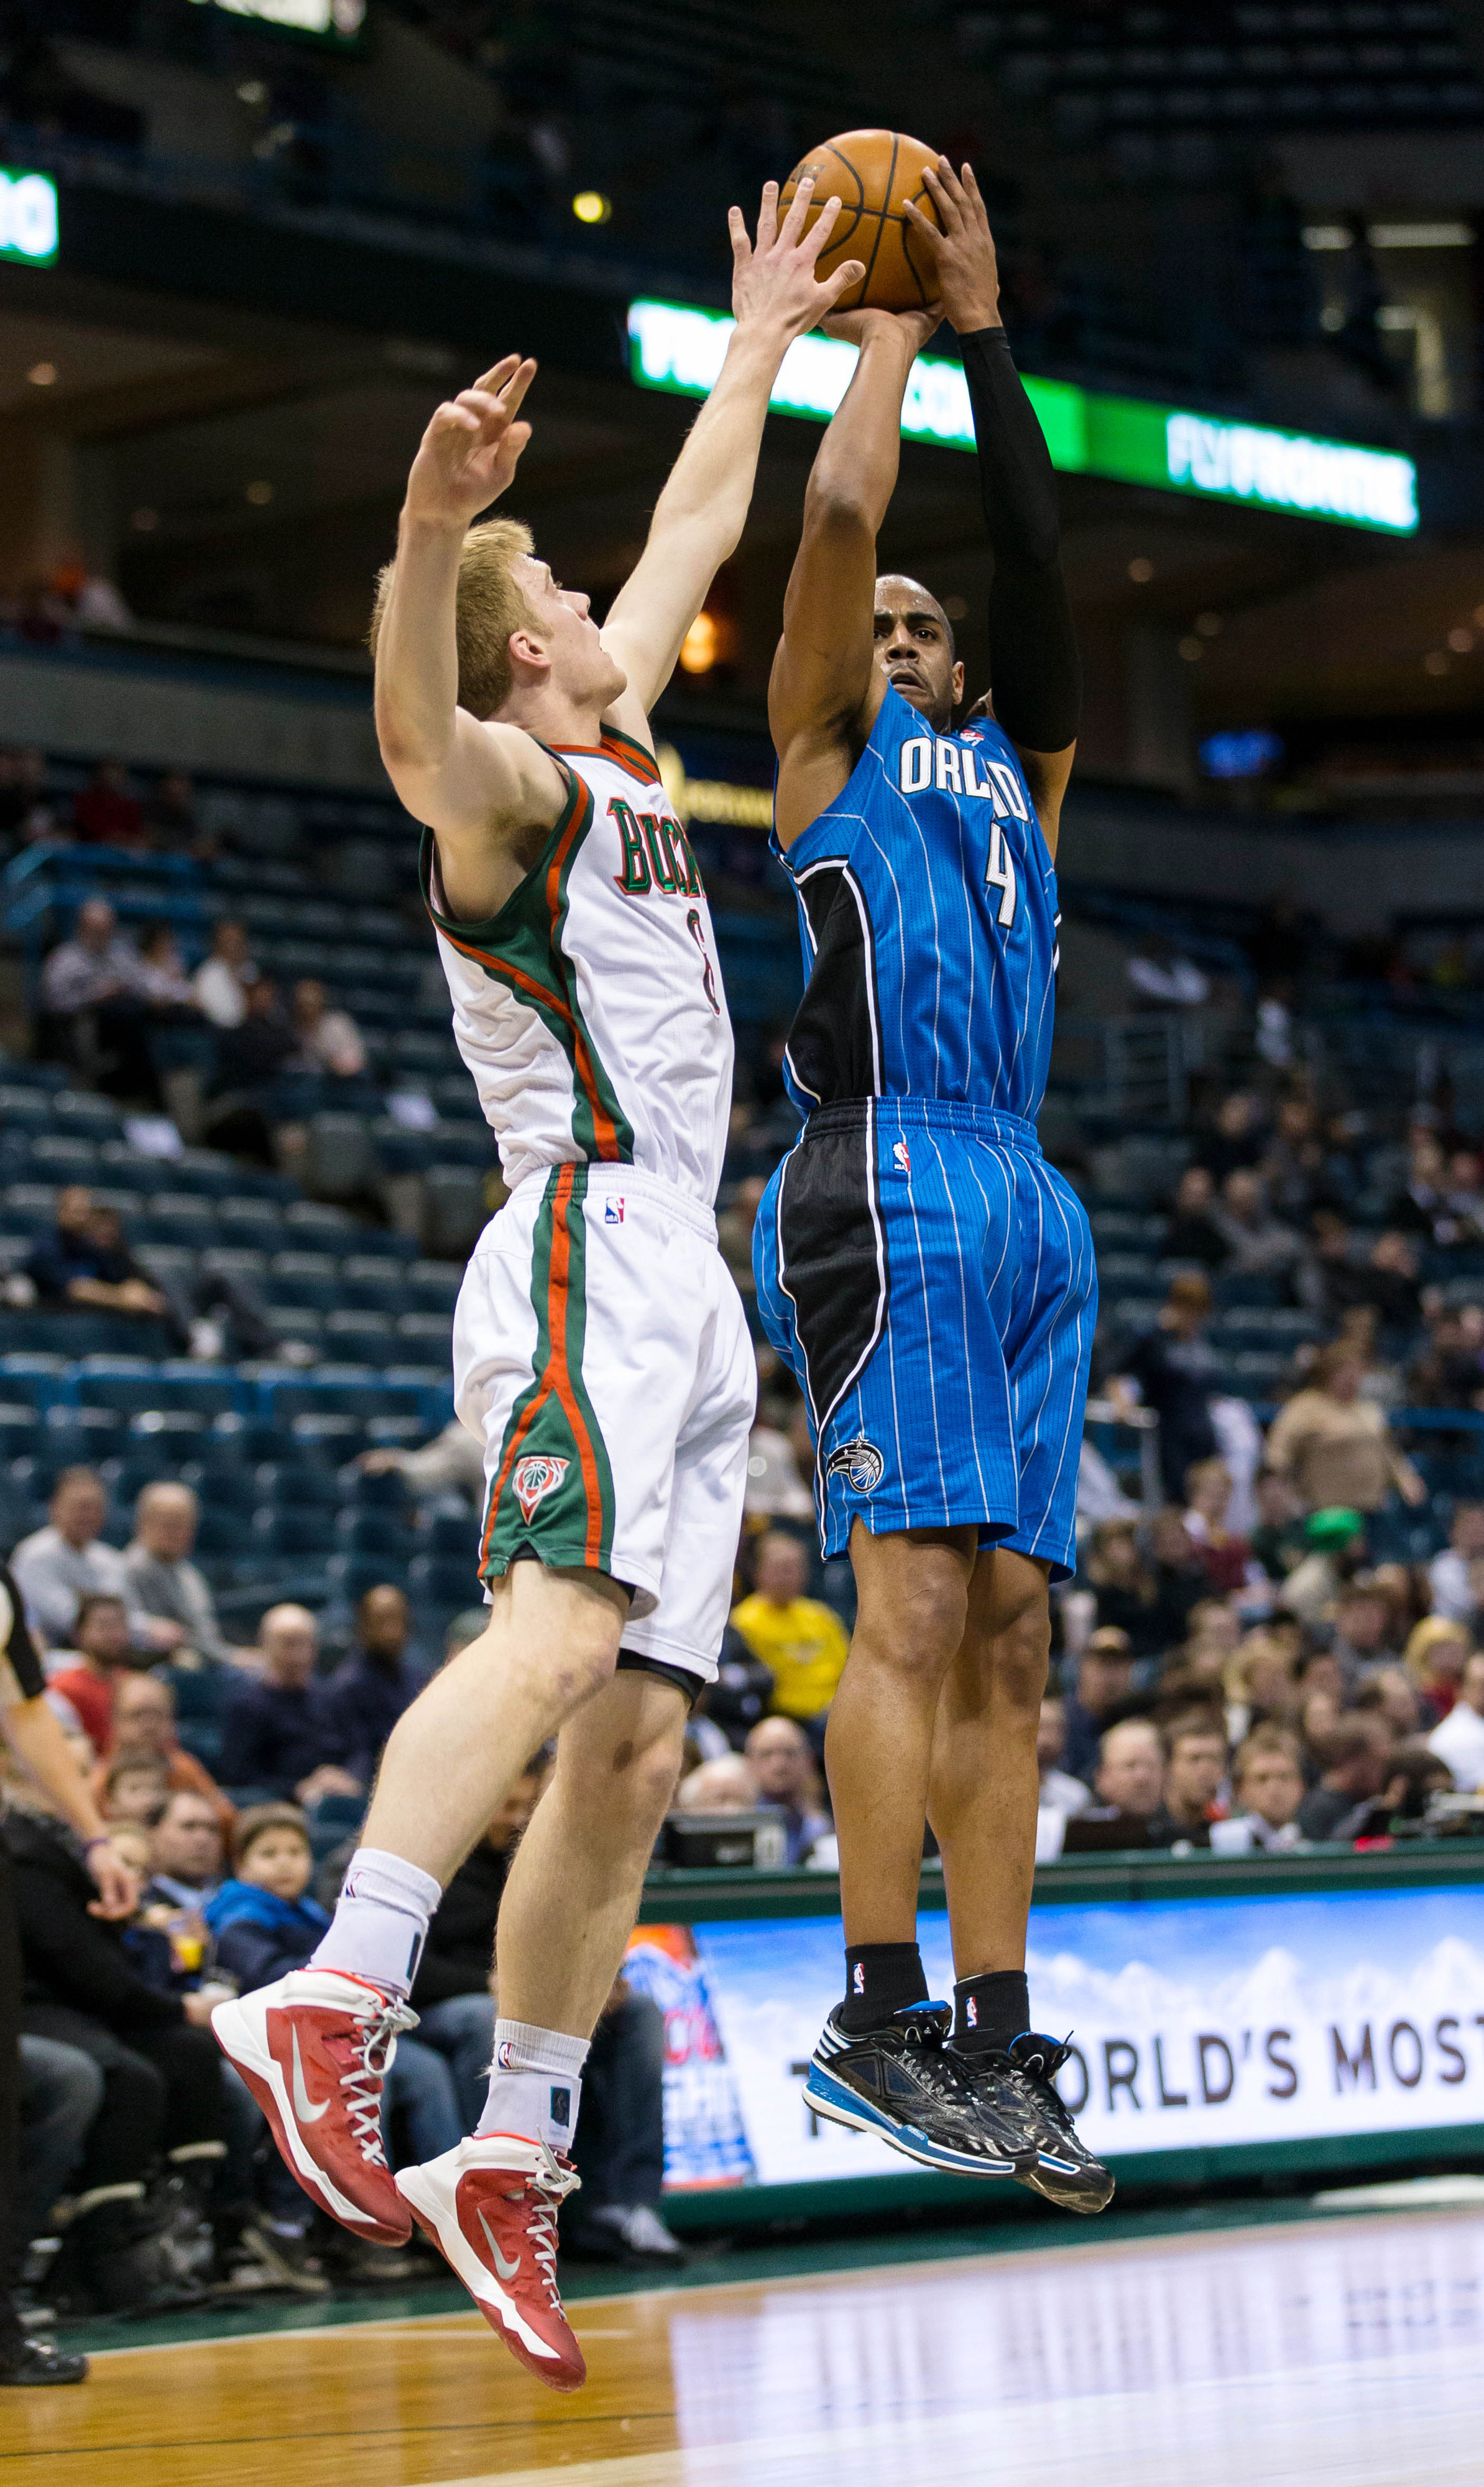 Nate Wolters and Arron Afflalo